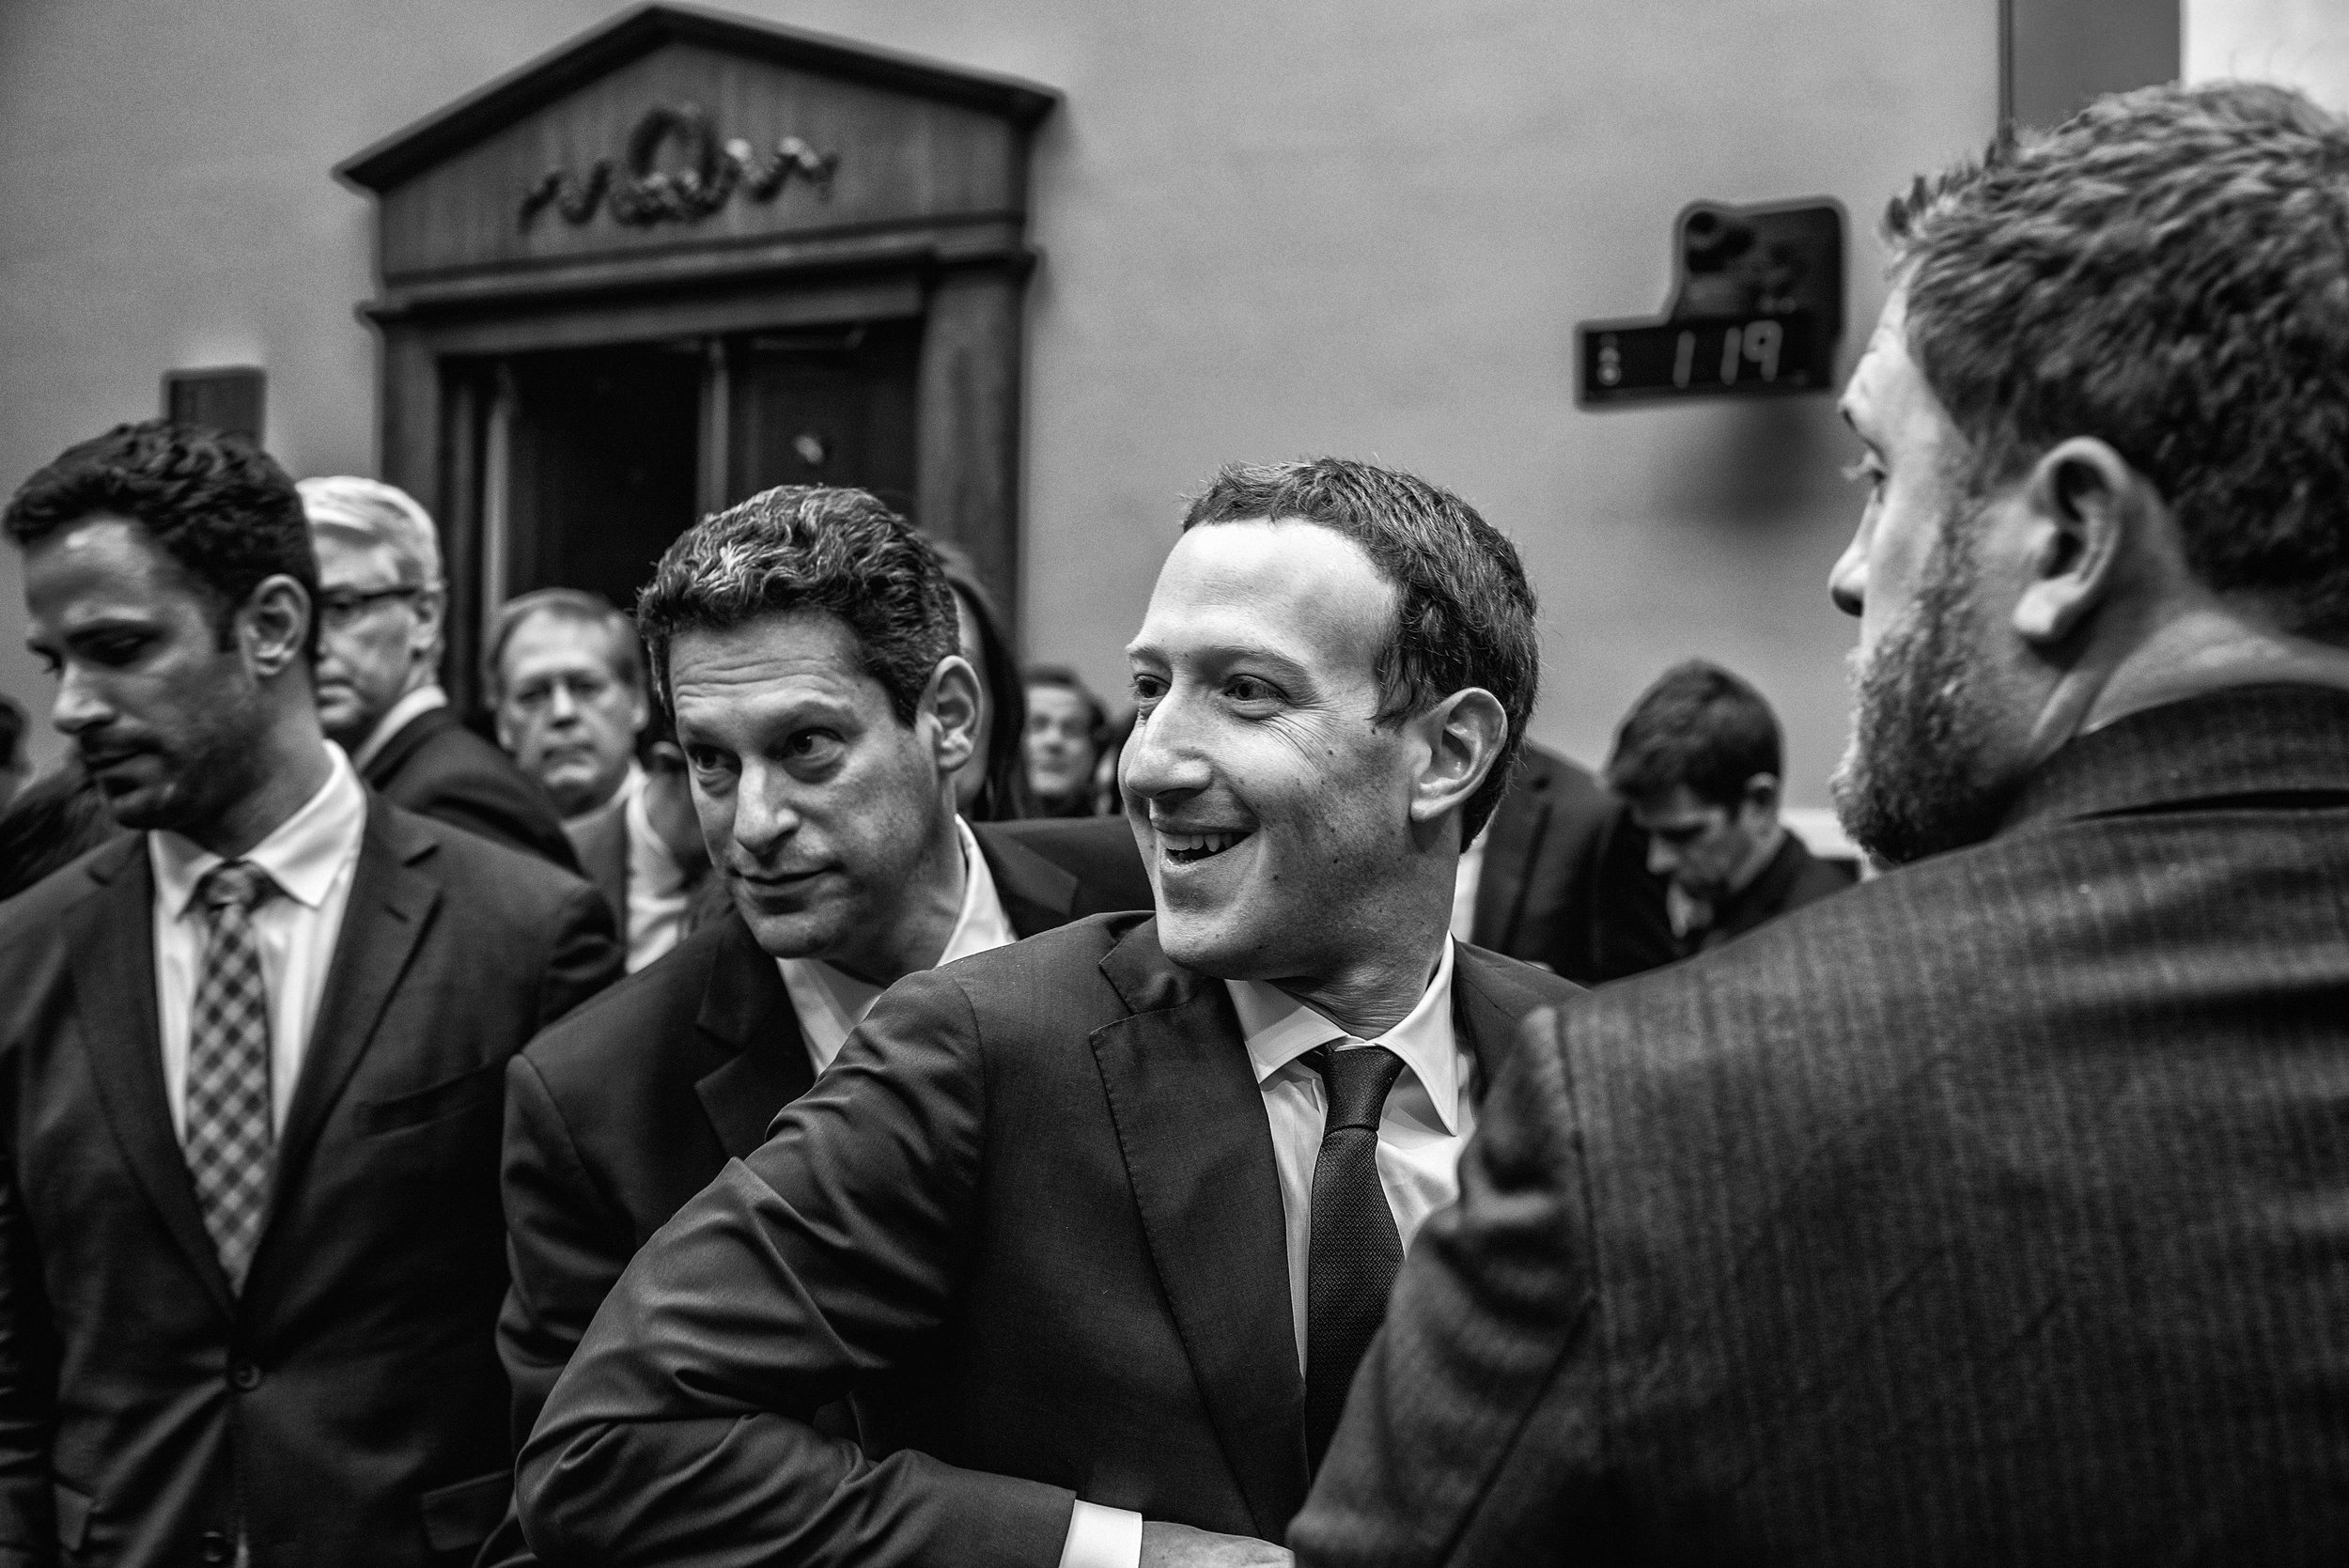 Day 447: Facebook CEO Mark Zuckerberg leaves after testifying before the House Energy and Commerce Committee, in Washington, DC on Wednesday, April 11, 2018.